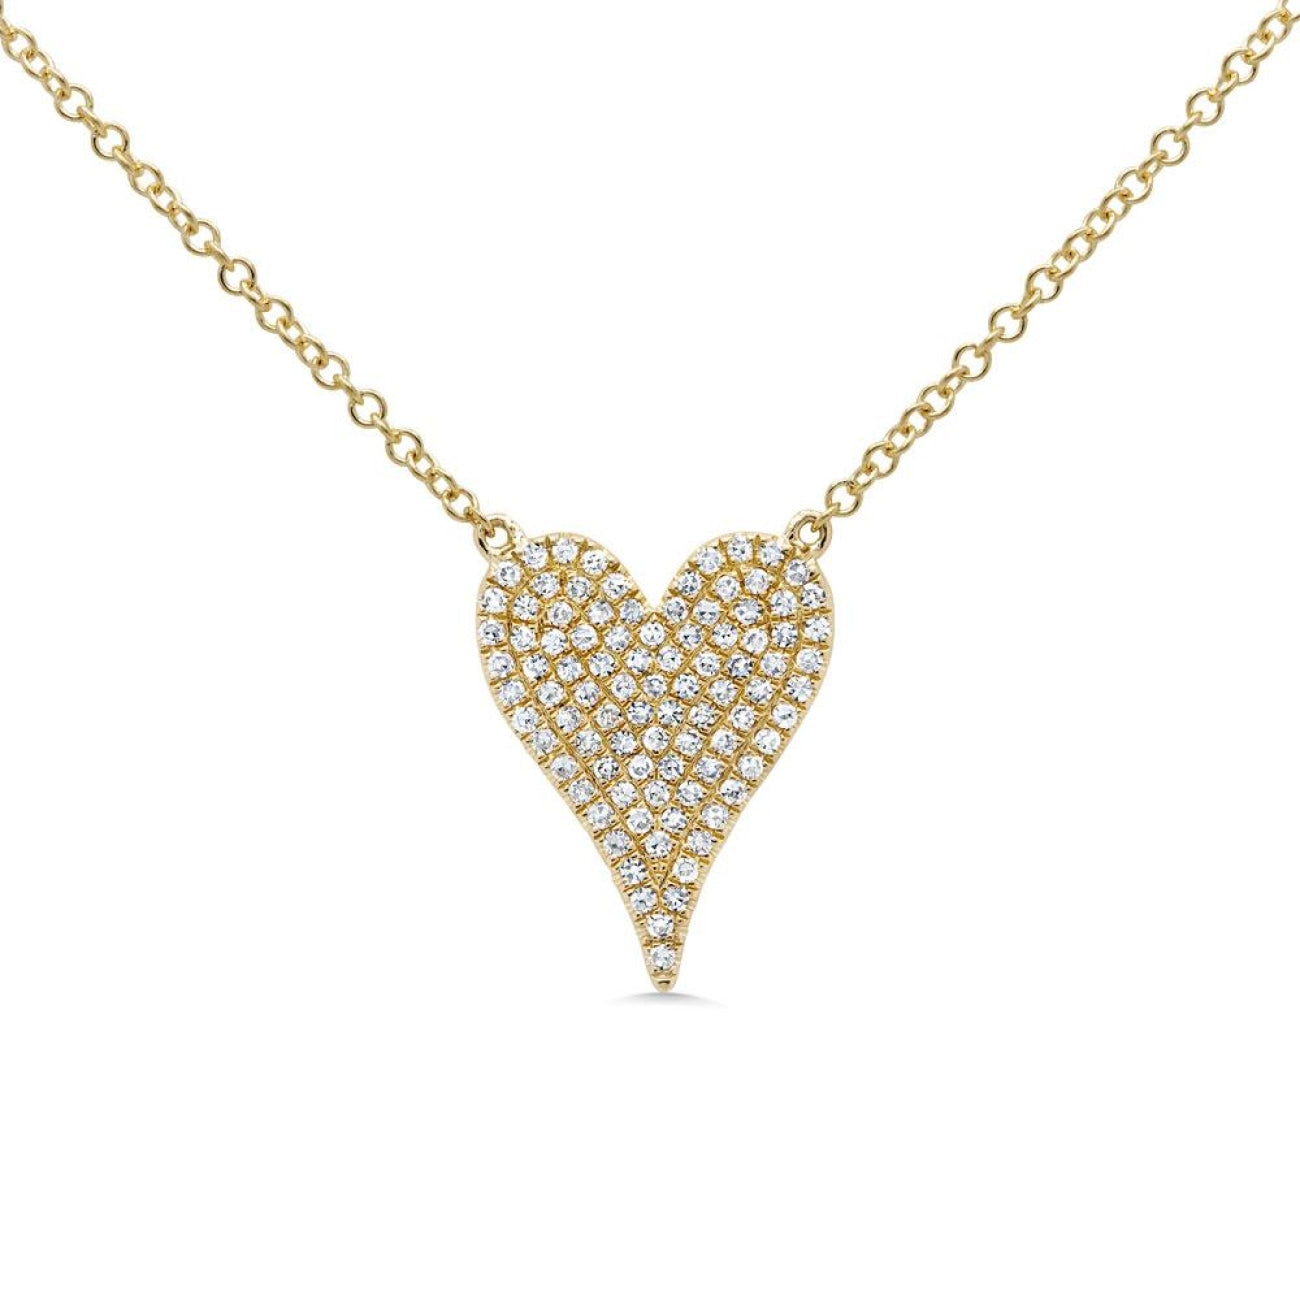 Shy Creation Jewelry - 0.21ct 14k Yellow Gold Diamond Pave Heart Necklace | Manfredi Jewels